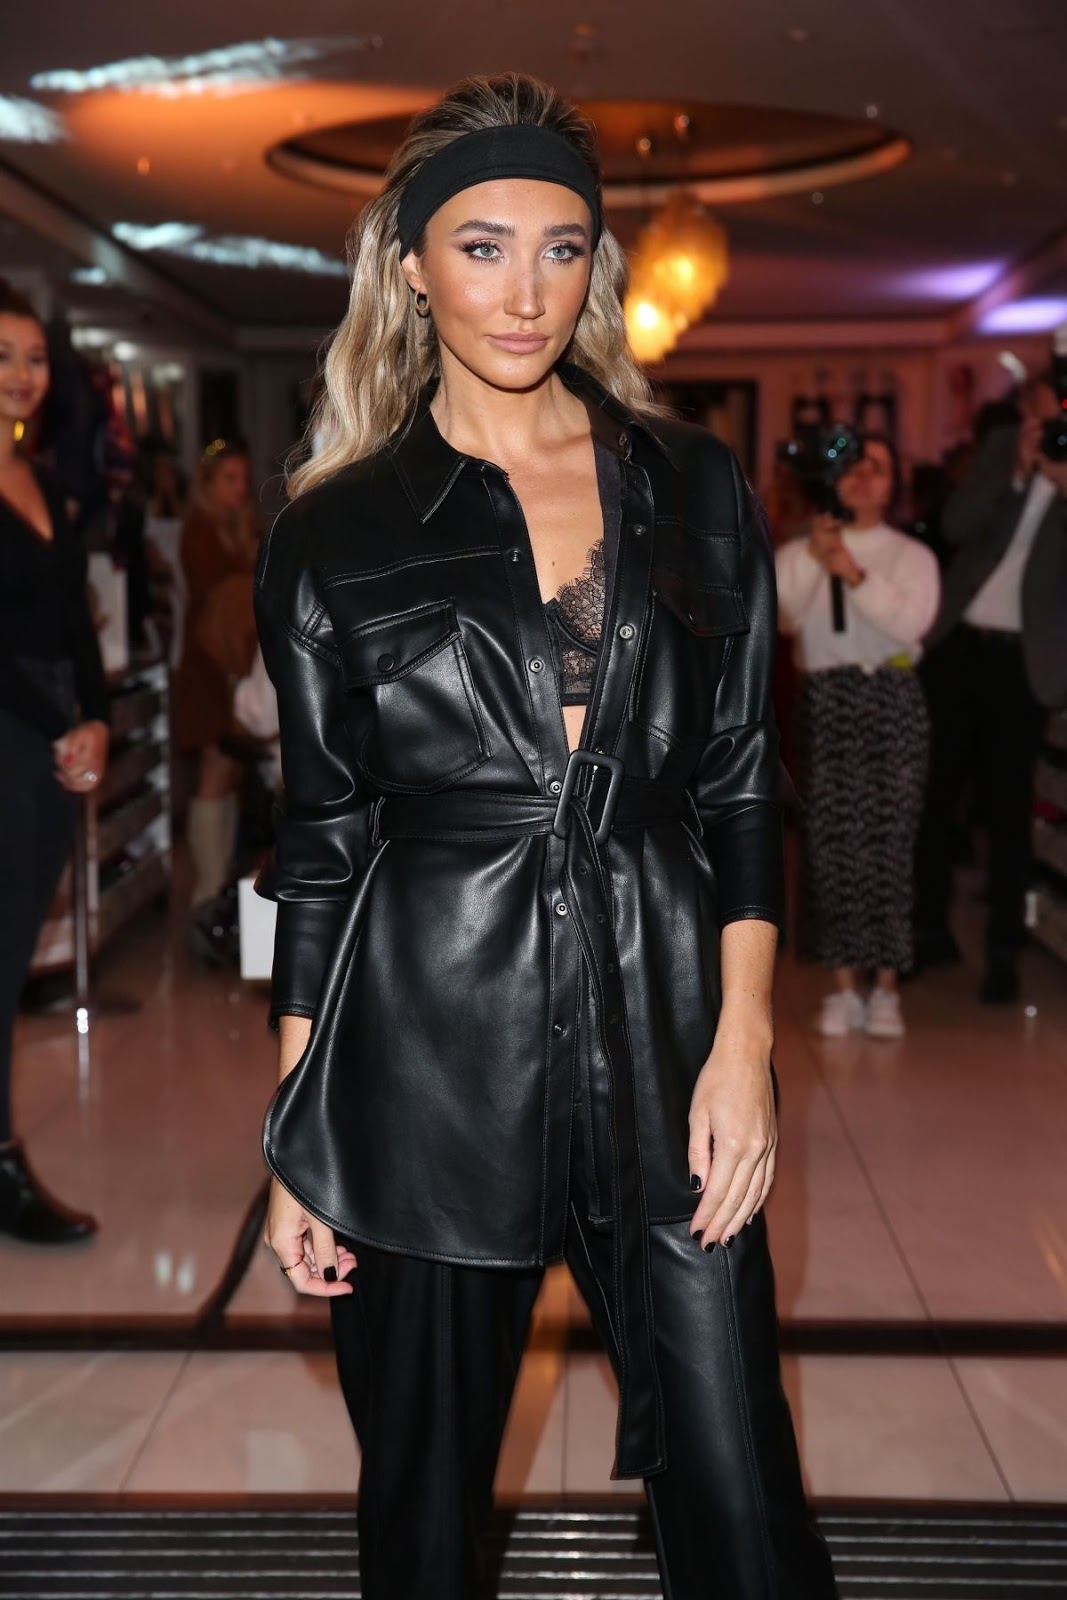 Megan McKenna flashes her lace bra in a black leather shirt and cigarette trousers as she leads the stars at her lingerie launch bash